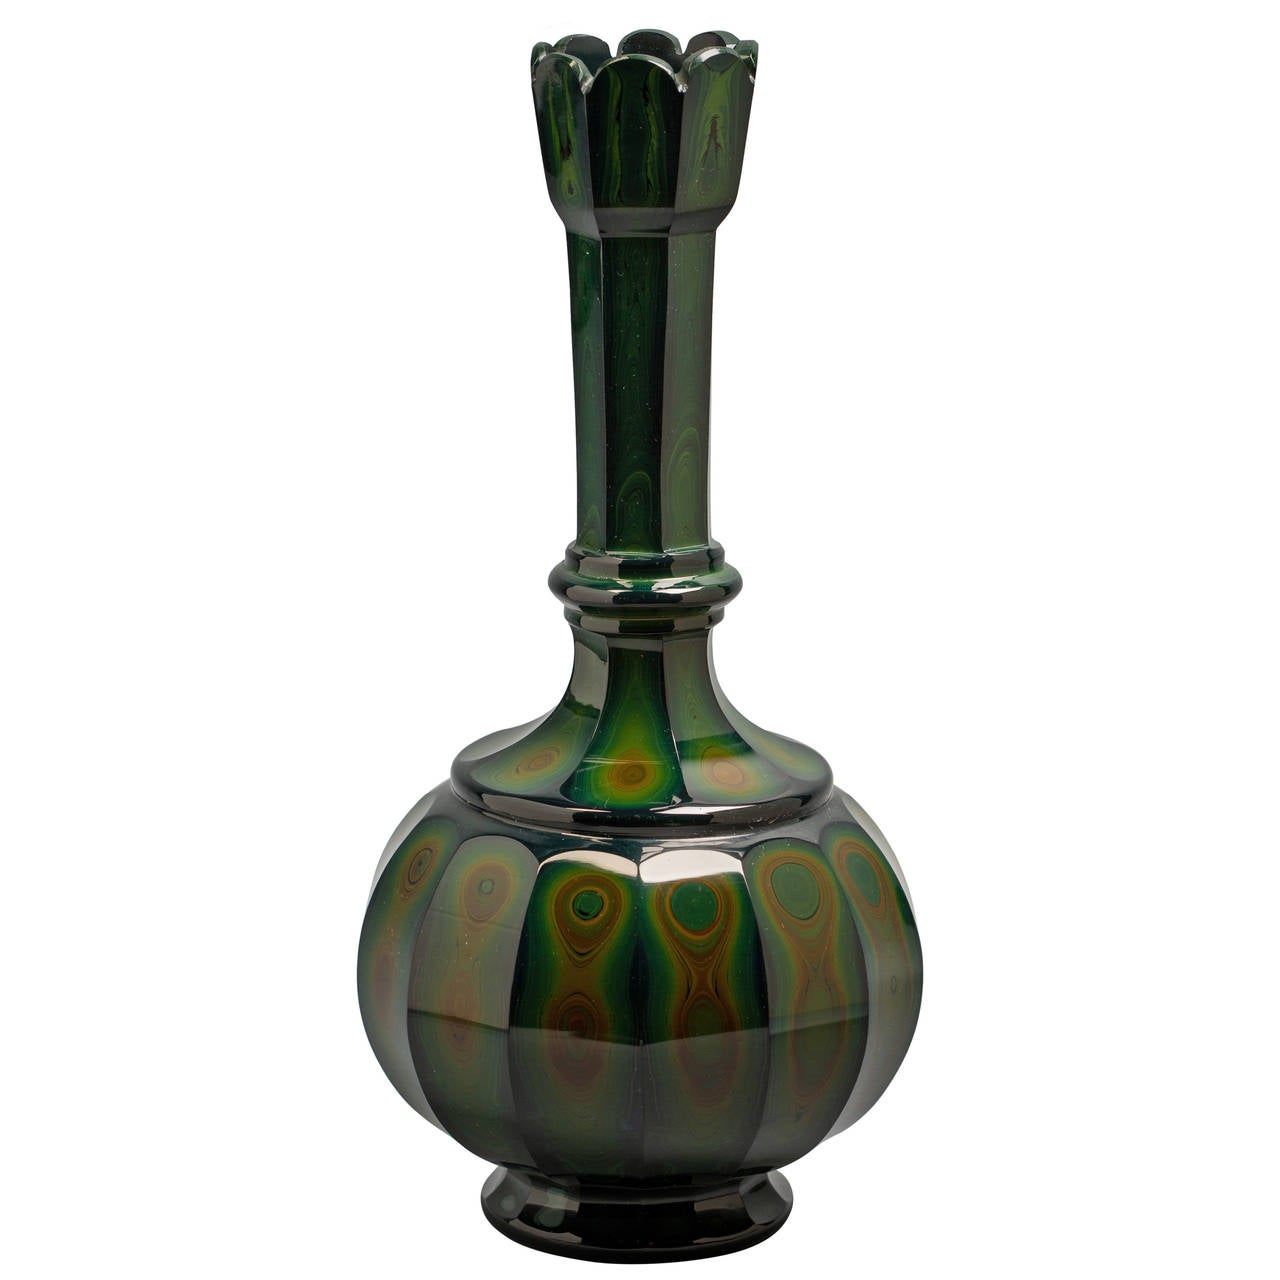 Bohemian Lithyalin Glass Vase, circa 1840 For Sale